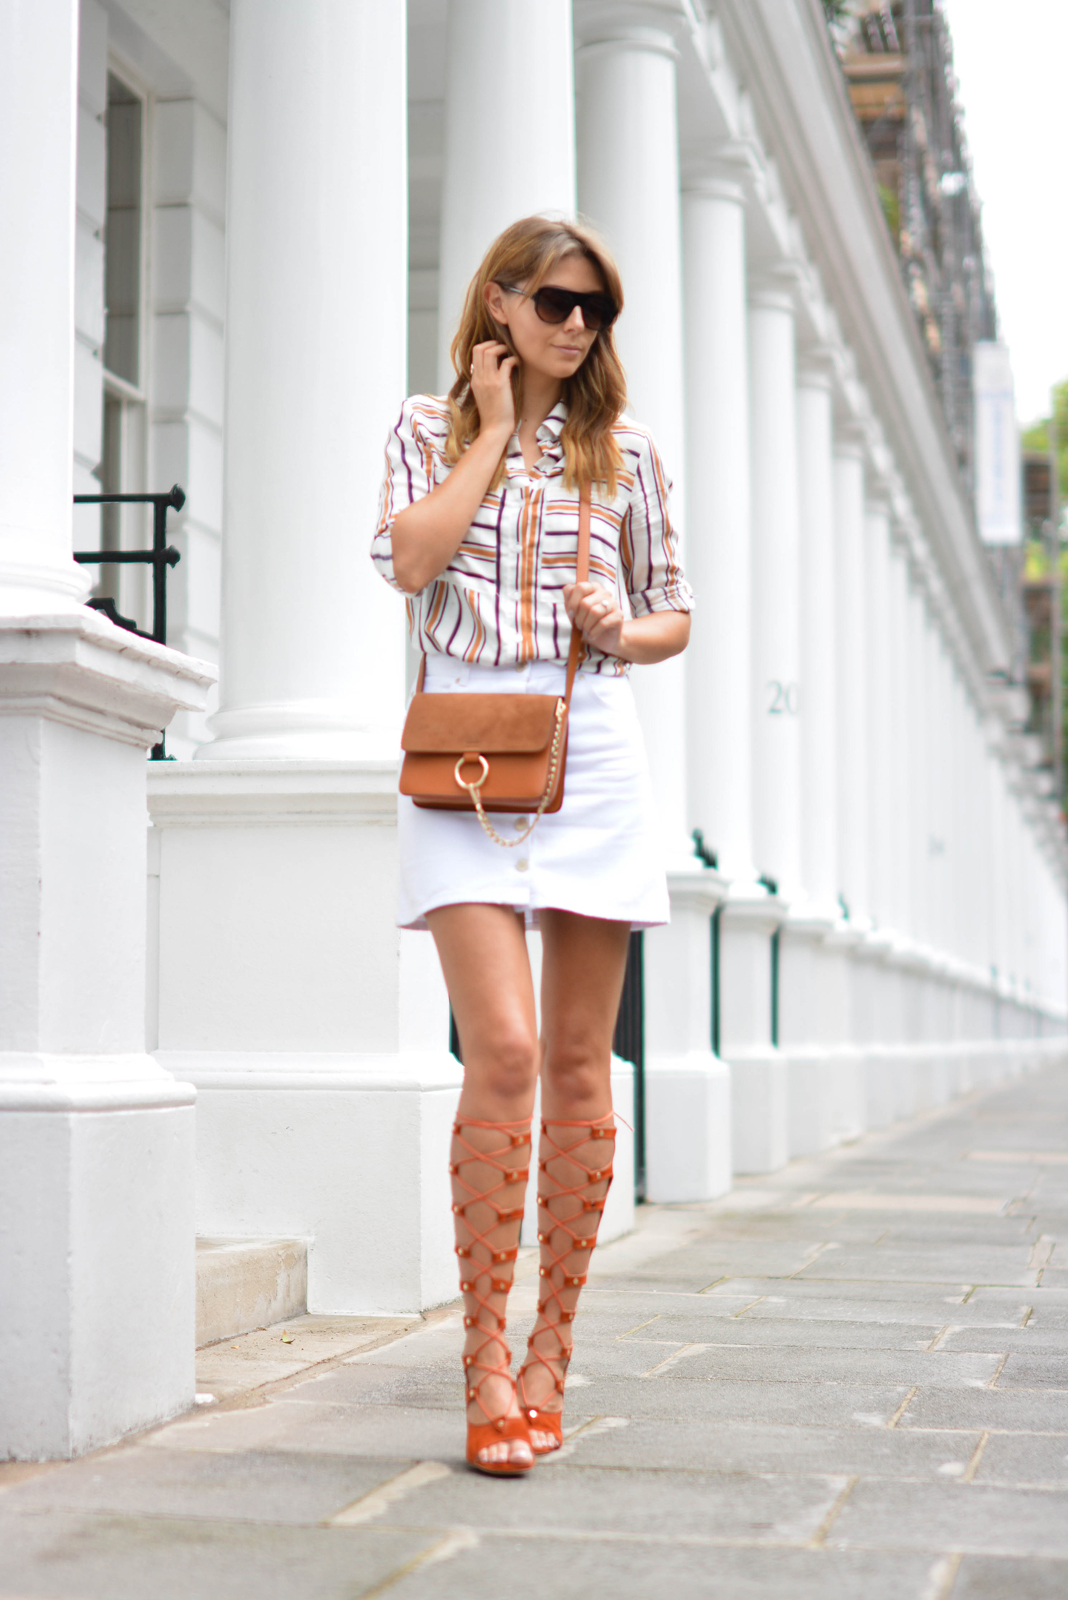 EJSTYLE wears Chloe style Tan lace up gladiator wedge sandals, White button up denim mini skirt, retro stripe shirt, Tan suede leather chloe style Faye bag, summer outfit